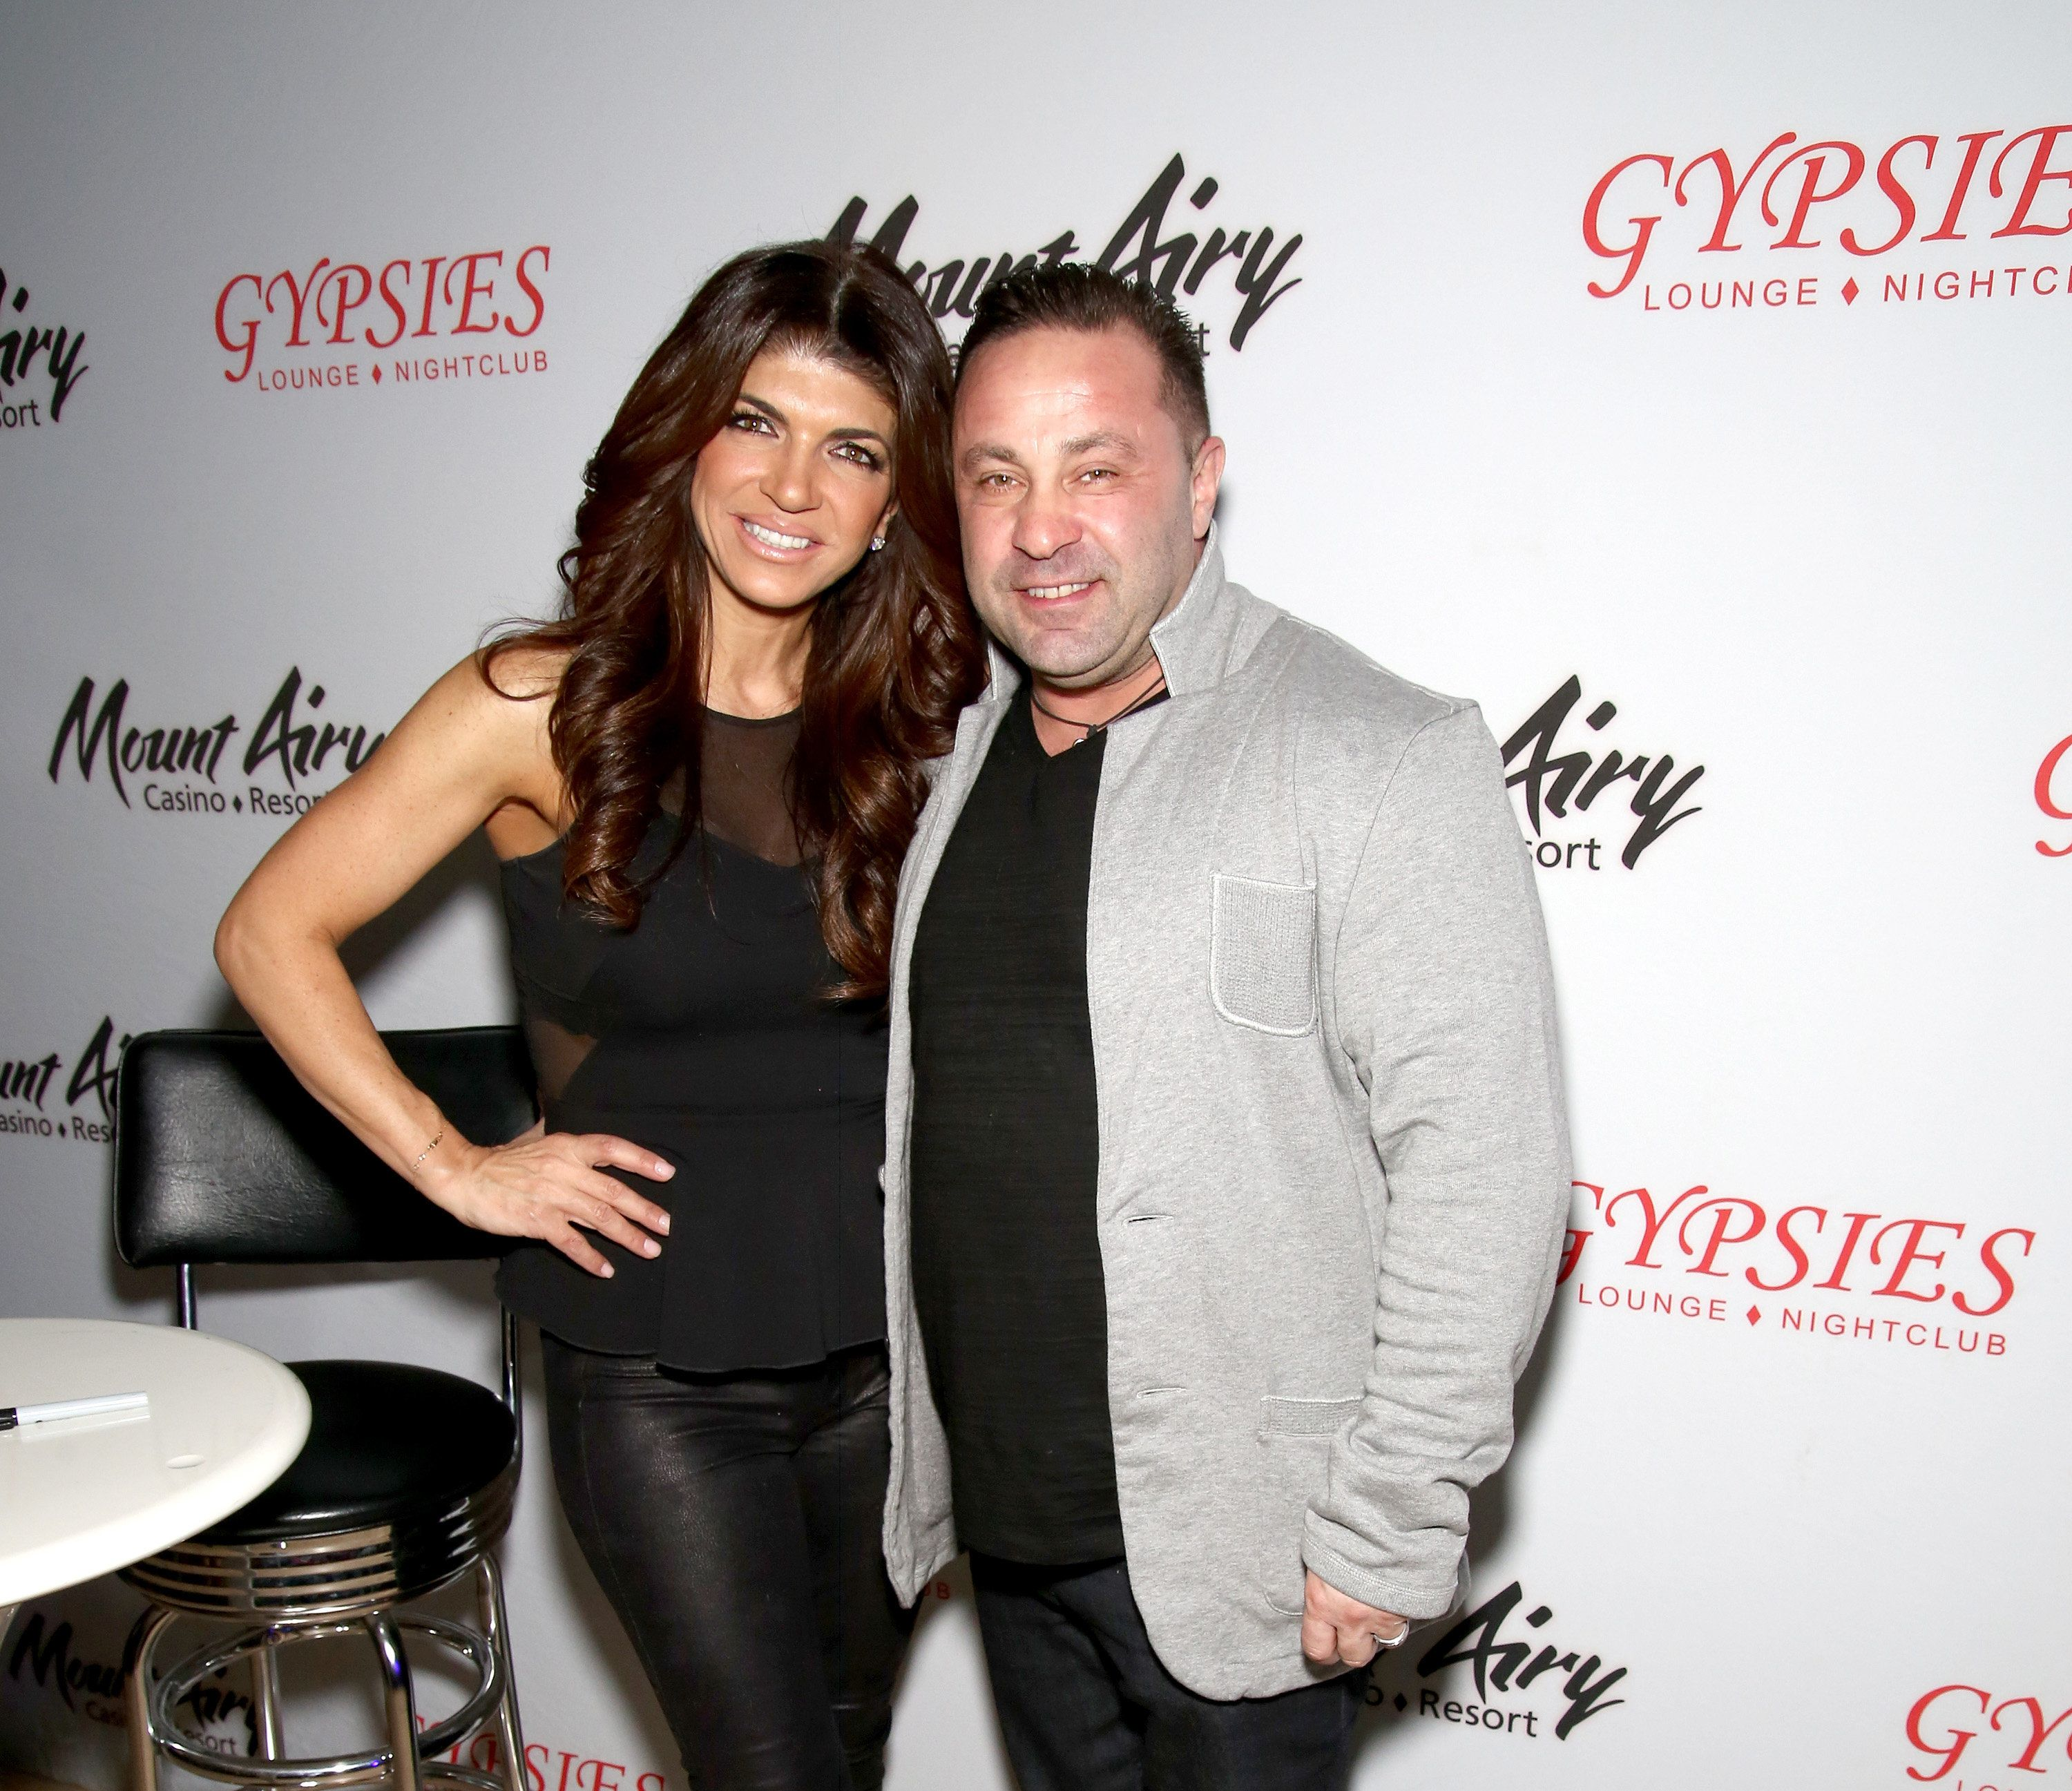 Joe Giudice Will Be Deported After Prison Release - How Did He React?